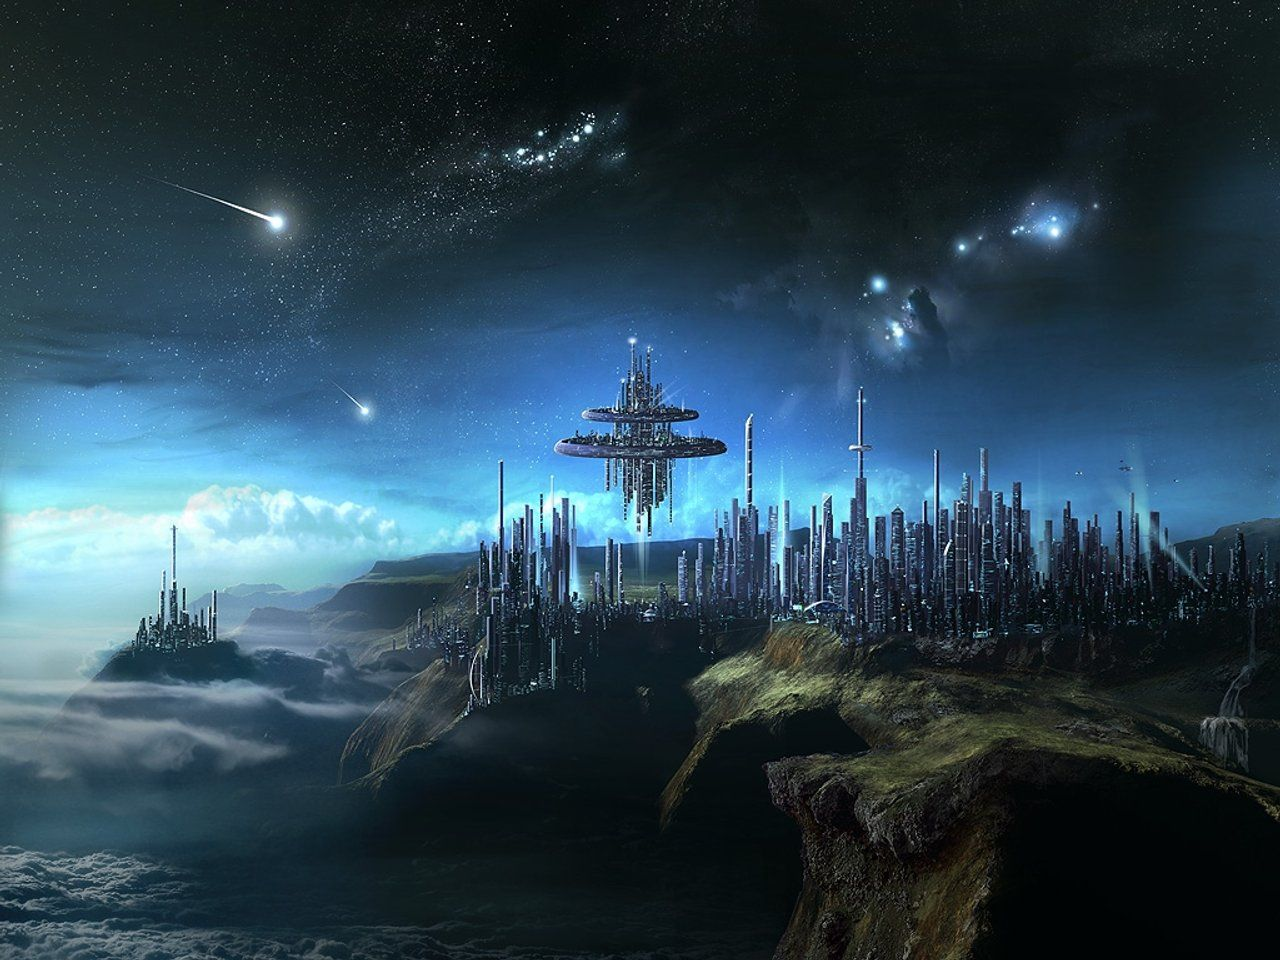 portals to other worlds - Google Search